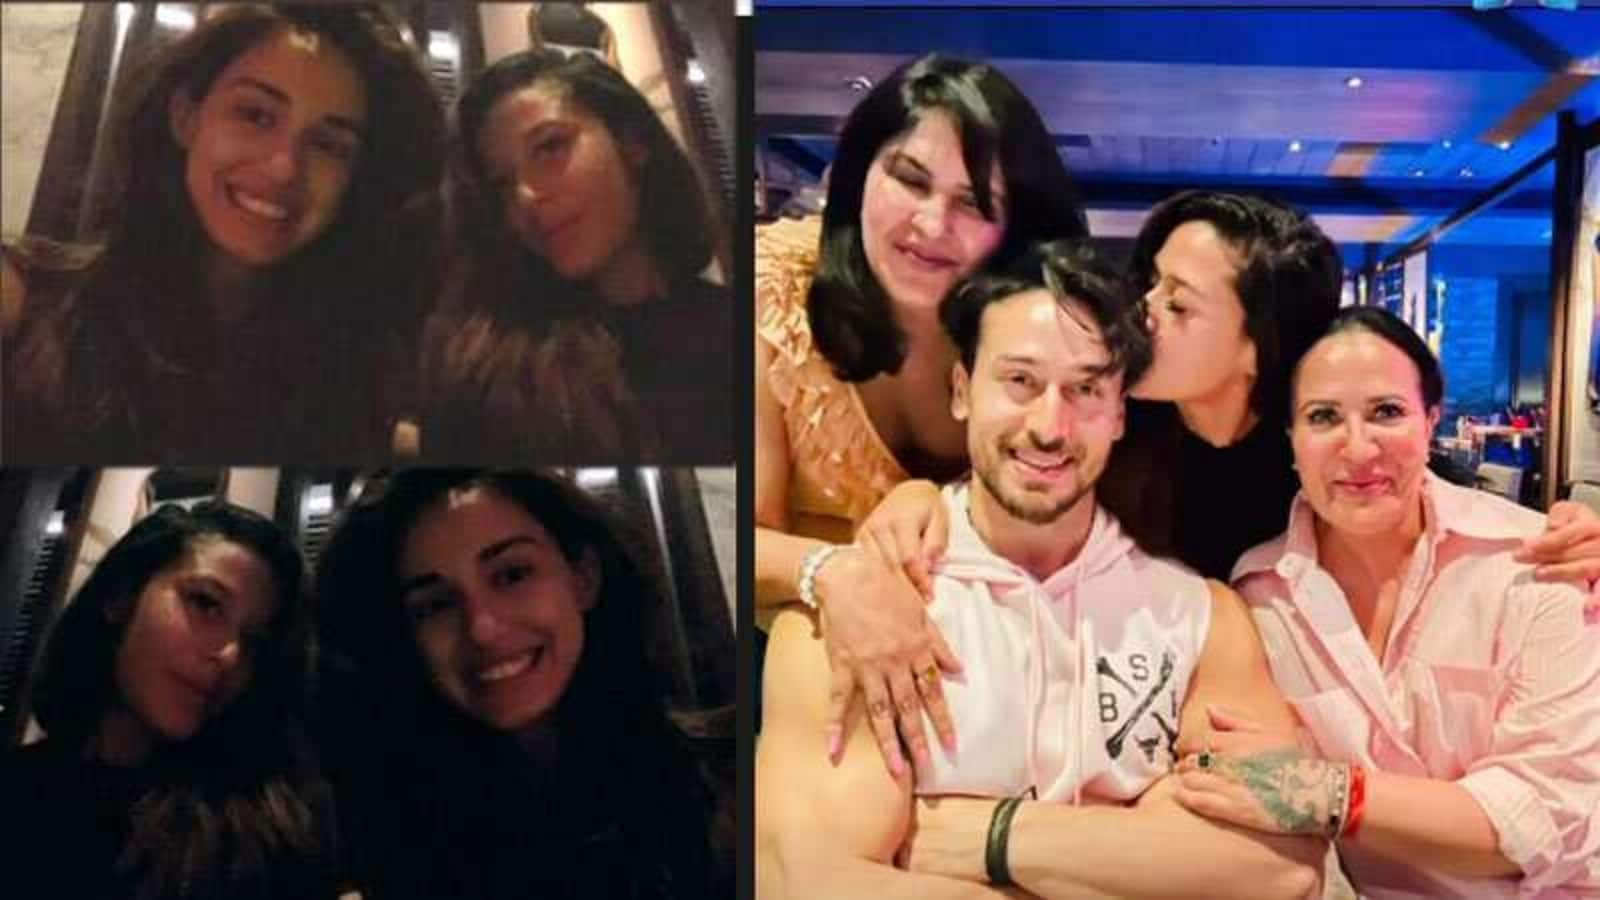 Tiger Shroff birthday dinner: Disha Patani-Krishna Shroff walk hand in hand, mom Ayesha joins them too - Hindustan Times